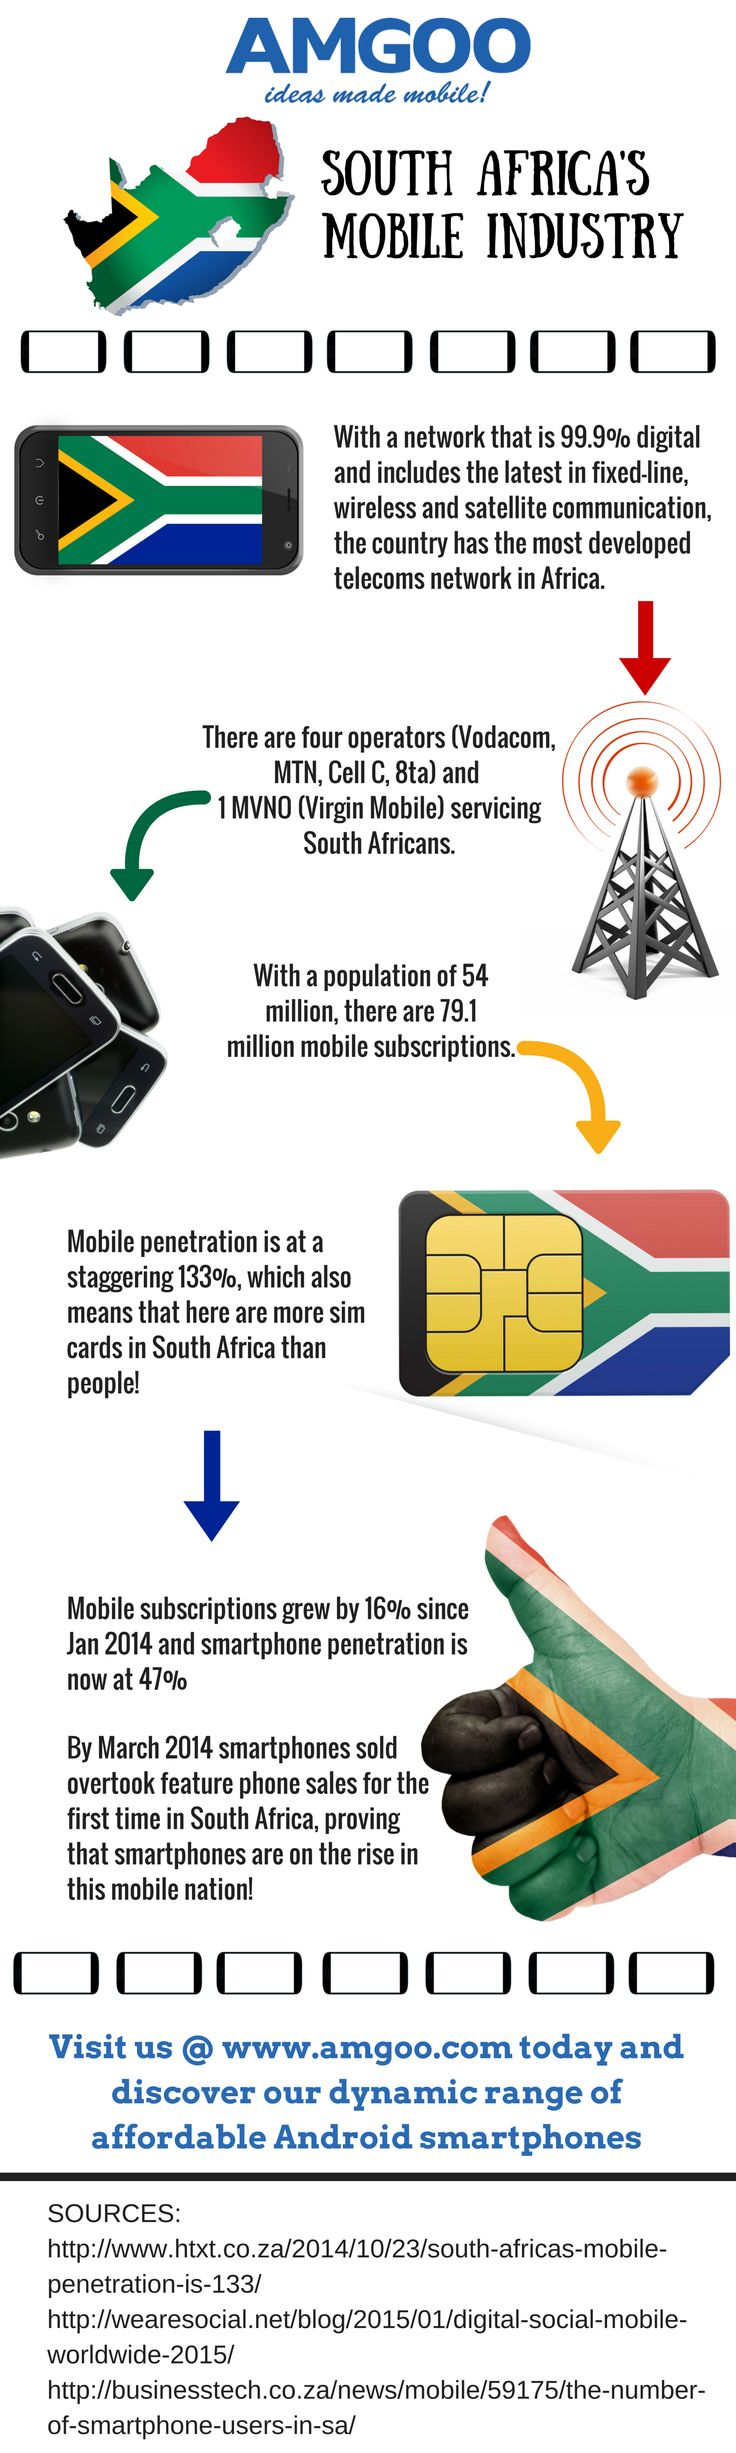 Get up to speed on the state of the South African mobile industry in this infographic brought to you by #AMGOO  #SouthAfricaMobileIndustry